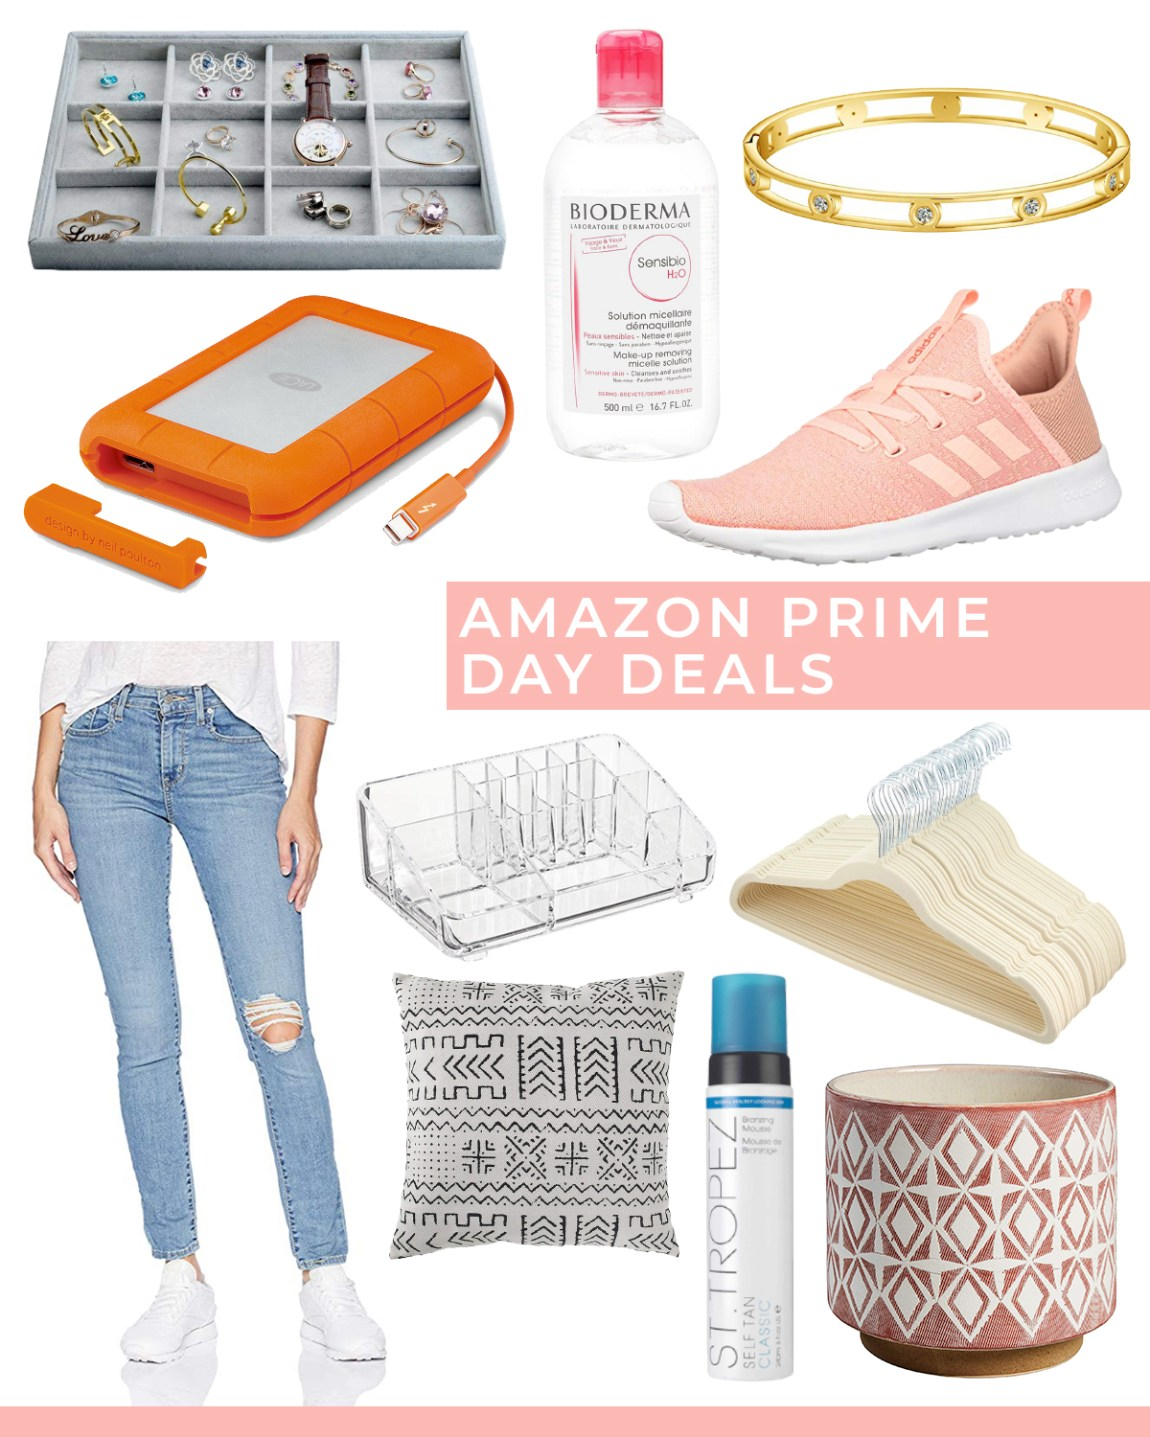 Amazon Prime Day Deals - My Picks // wanderabode.com